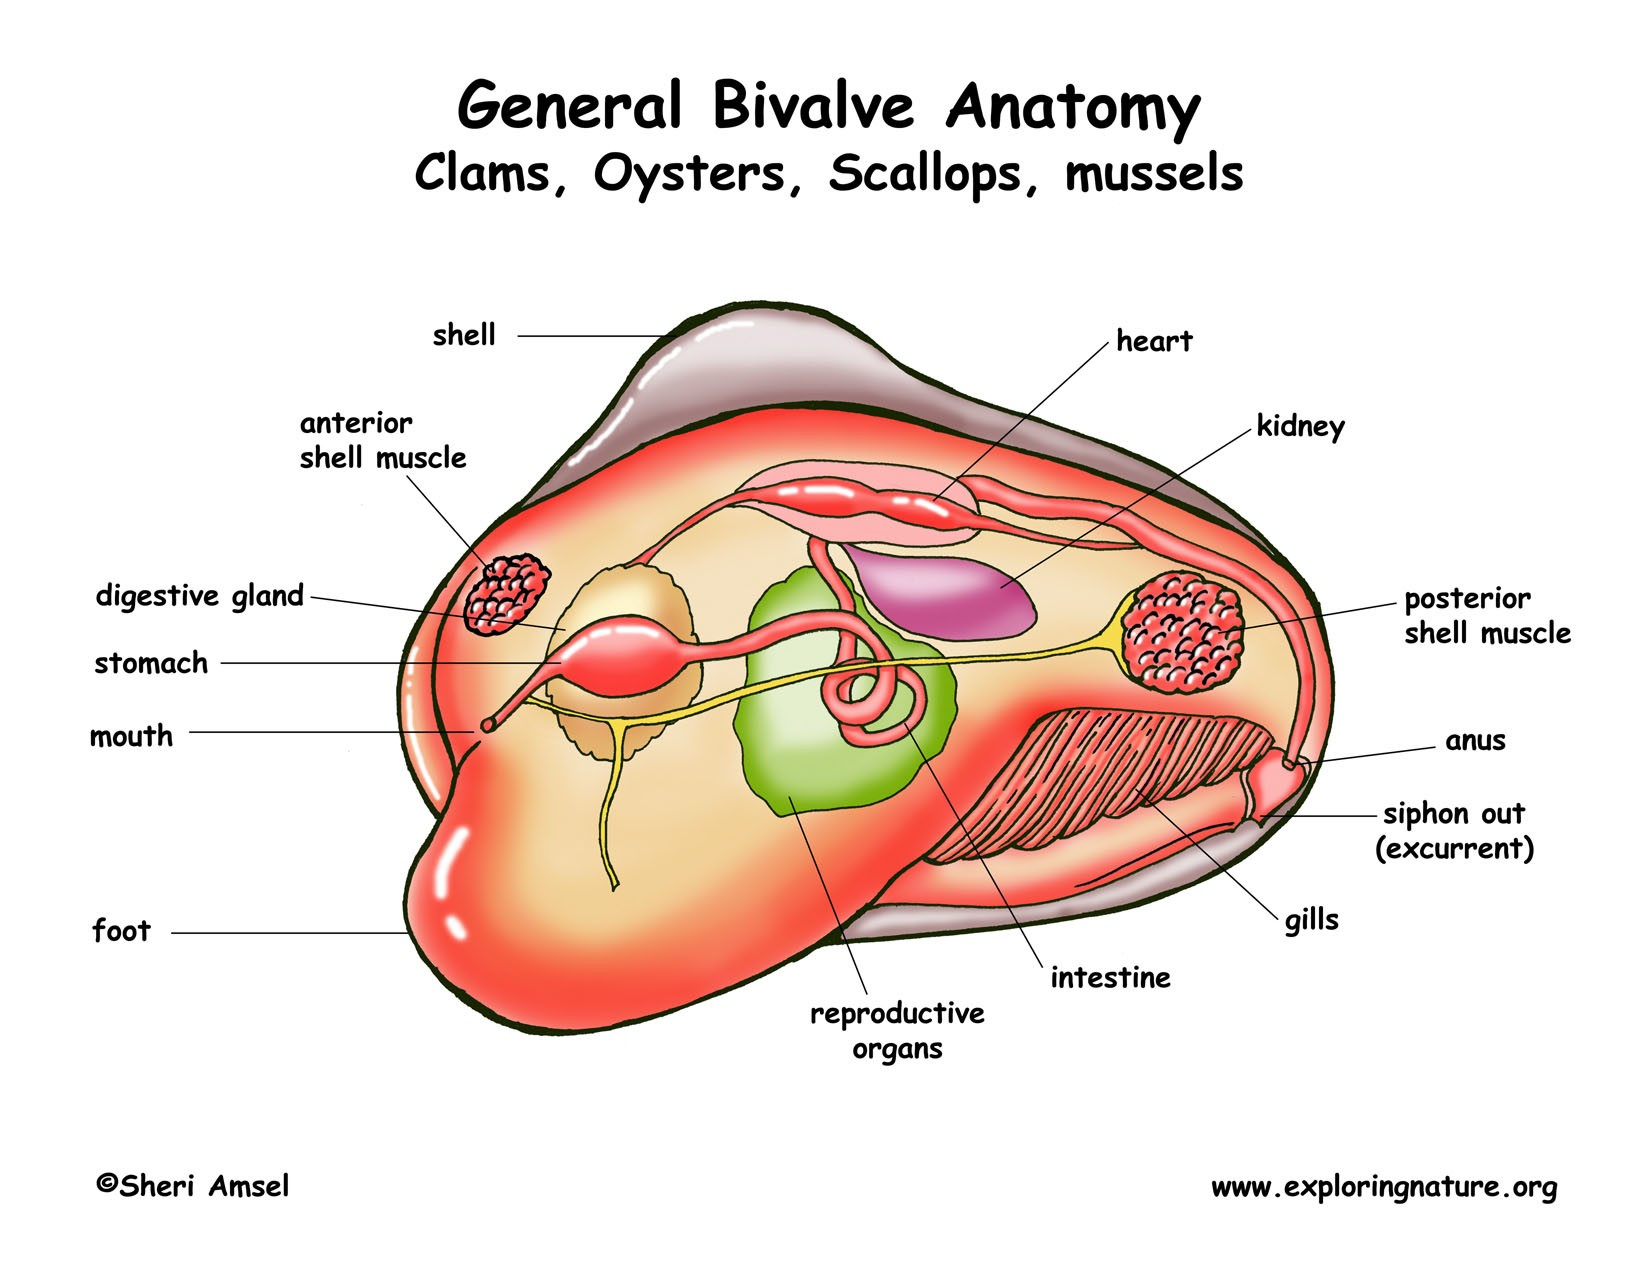 General Bivalve Anatomy Clams, Oysters, Scallops, Mussels Diagram